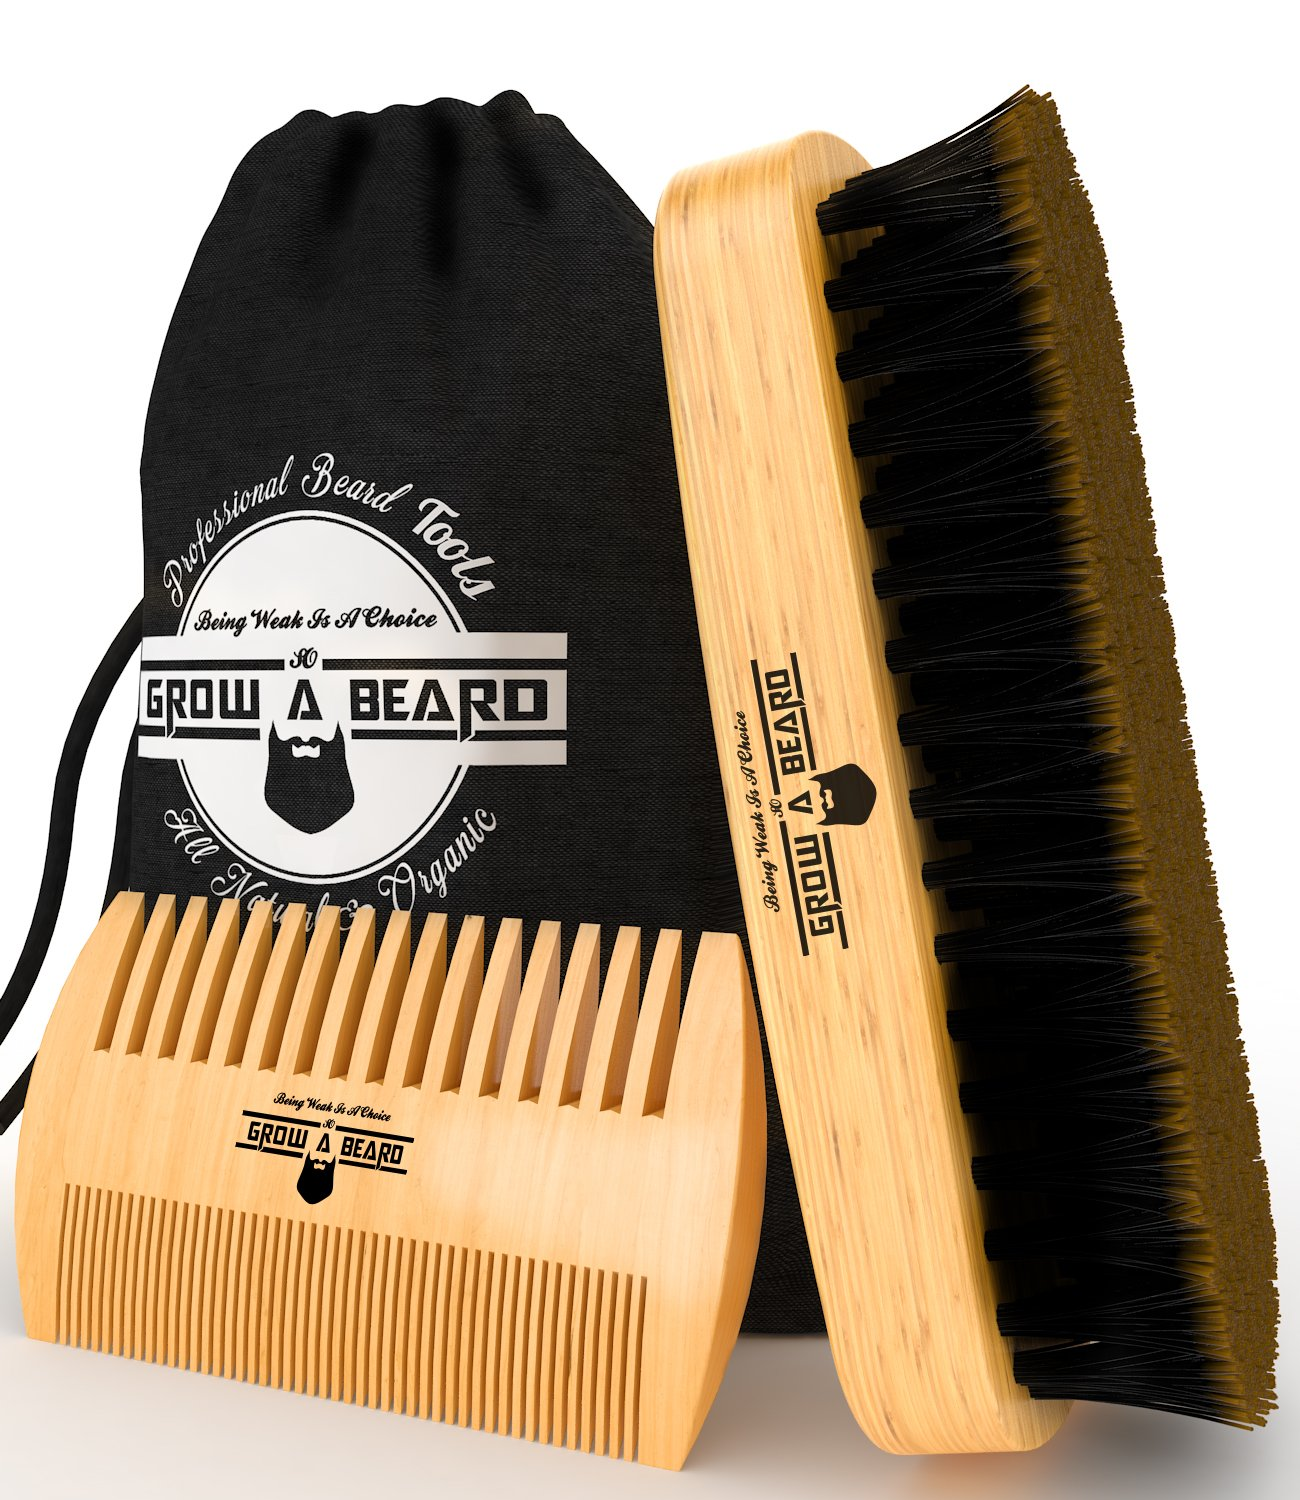 Beard Brush & Comb Set for Men Care - Gift Box & Friendly Bag - Best Bamboo Grooming Kit for Home & Travel - Great for Dry or Wet Beards - Distributes Balm for Growth & Styling - Adds Shine & Softness by Grow A Beard (Image #2)